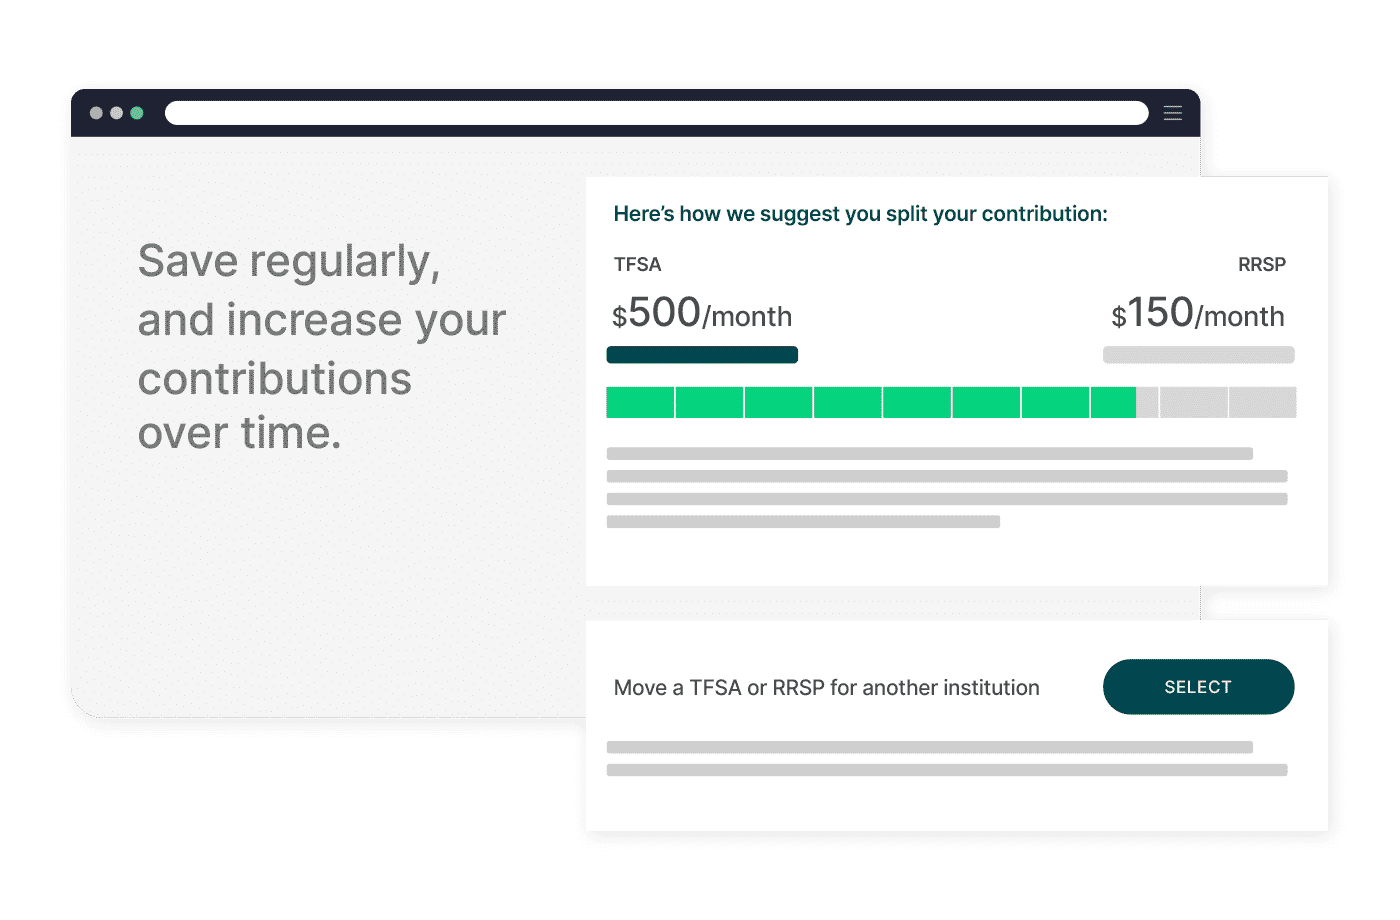 Save regularly and increase contributions over time